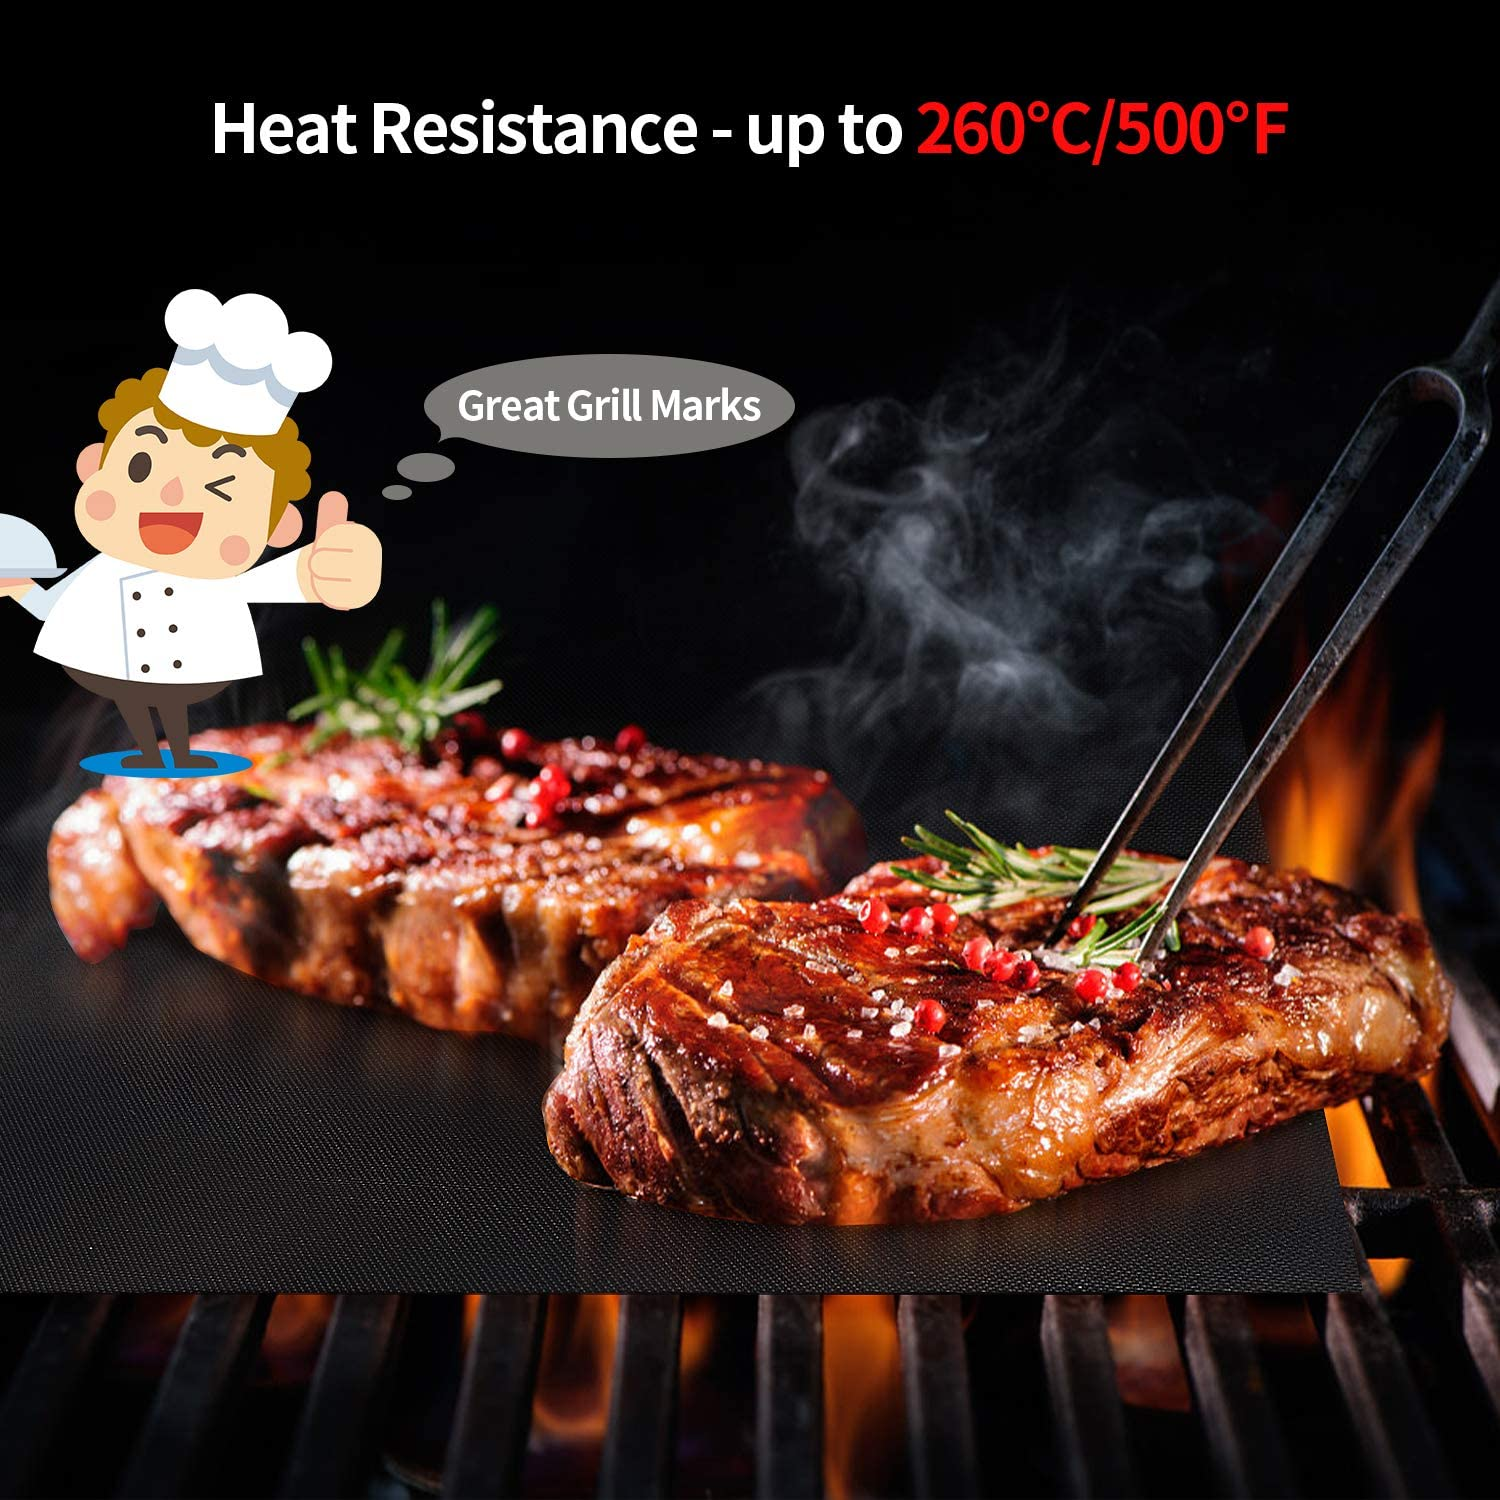 Set of 3 Non Stick Reusable Barbecue Baking Mats Teflon Cooking Mats FDA-Certificated for Indoor Outdoor BBQ Works on Charcoal Gas Electric Grill Sheets 50x40CM Karvipark BBQ Grill Mat